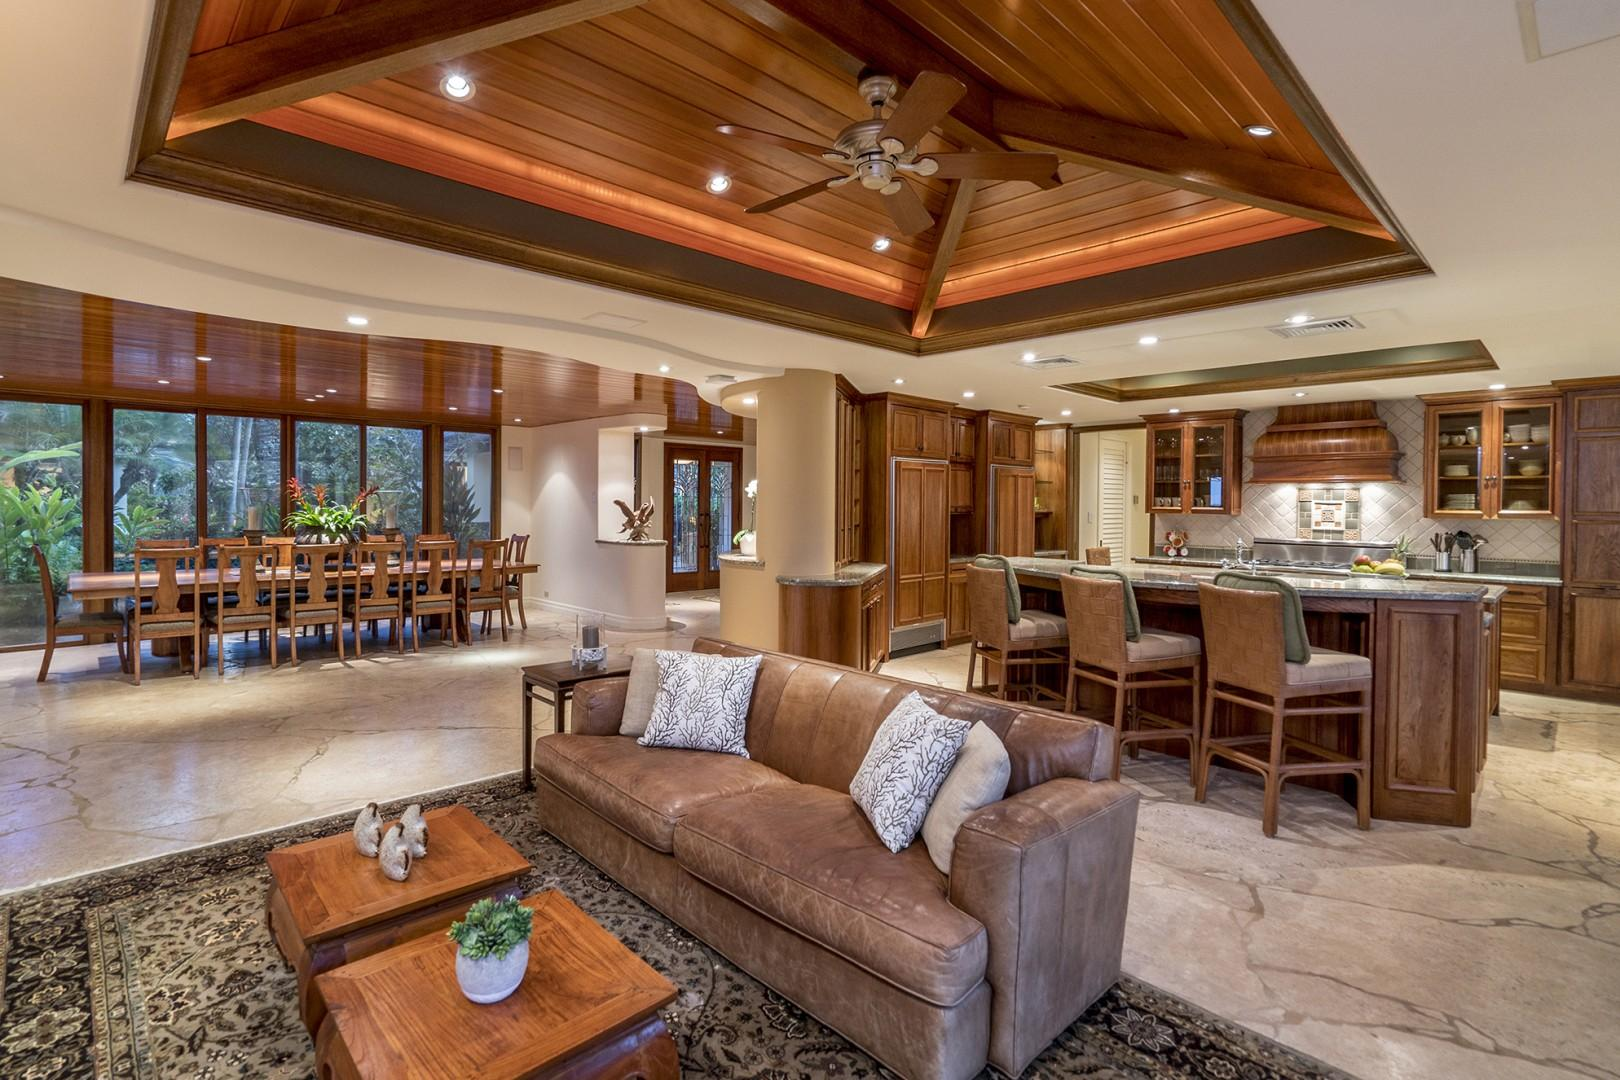 Main house: Kitchen opens to the dining area.  Formal dining seats 14.